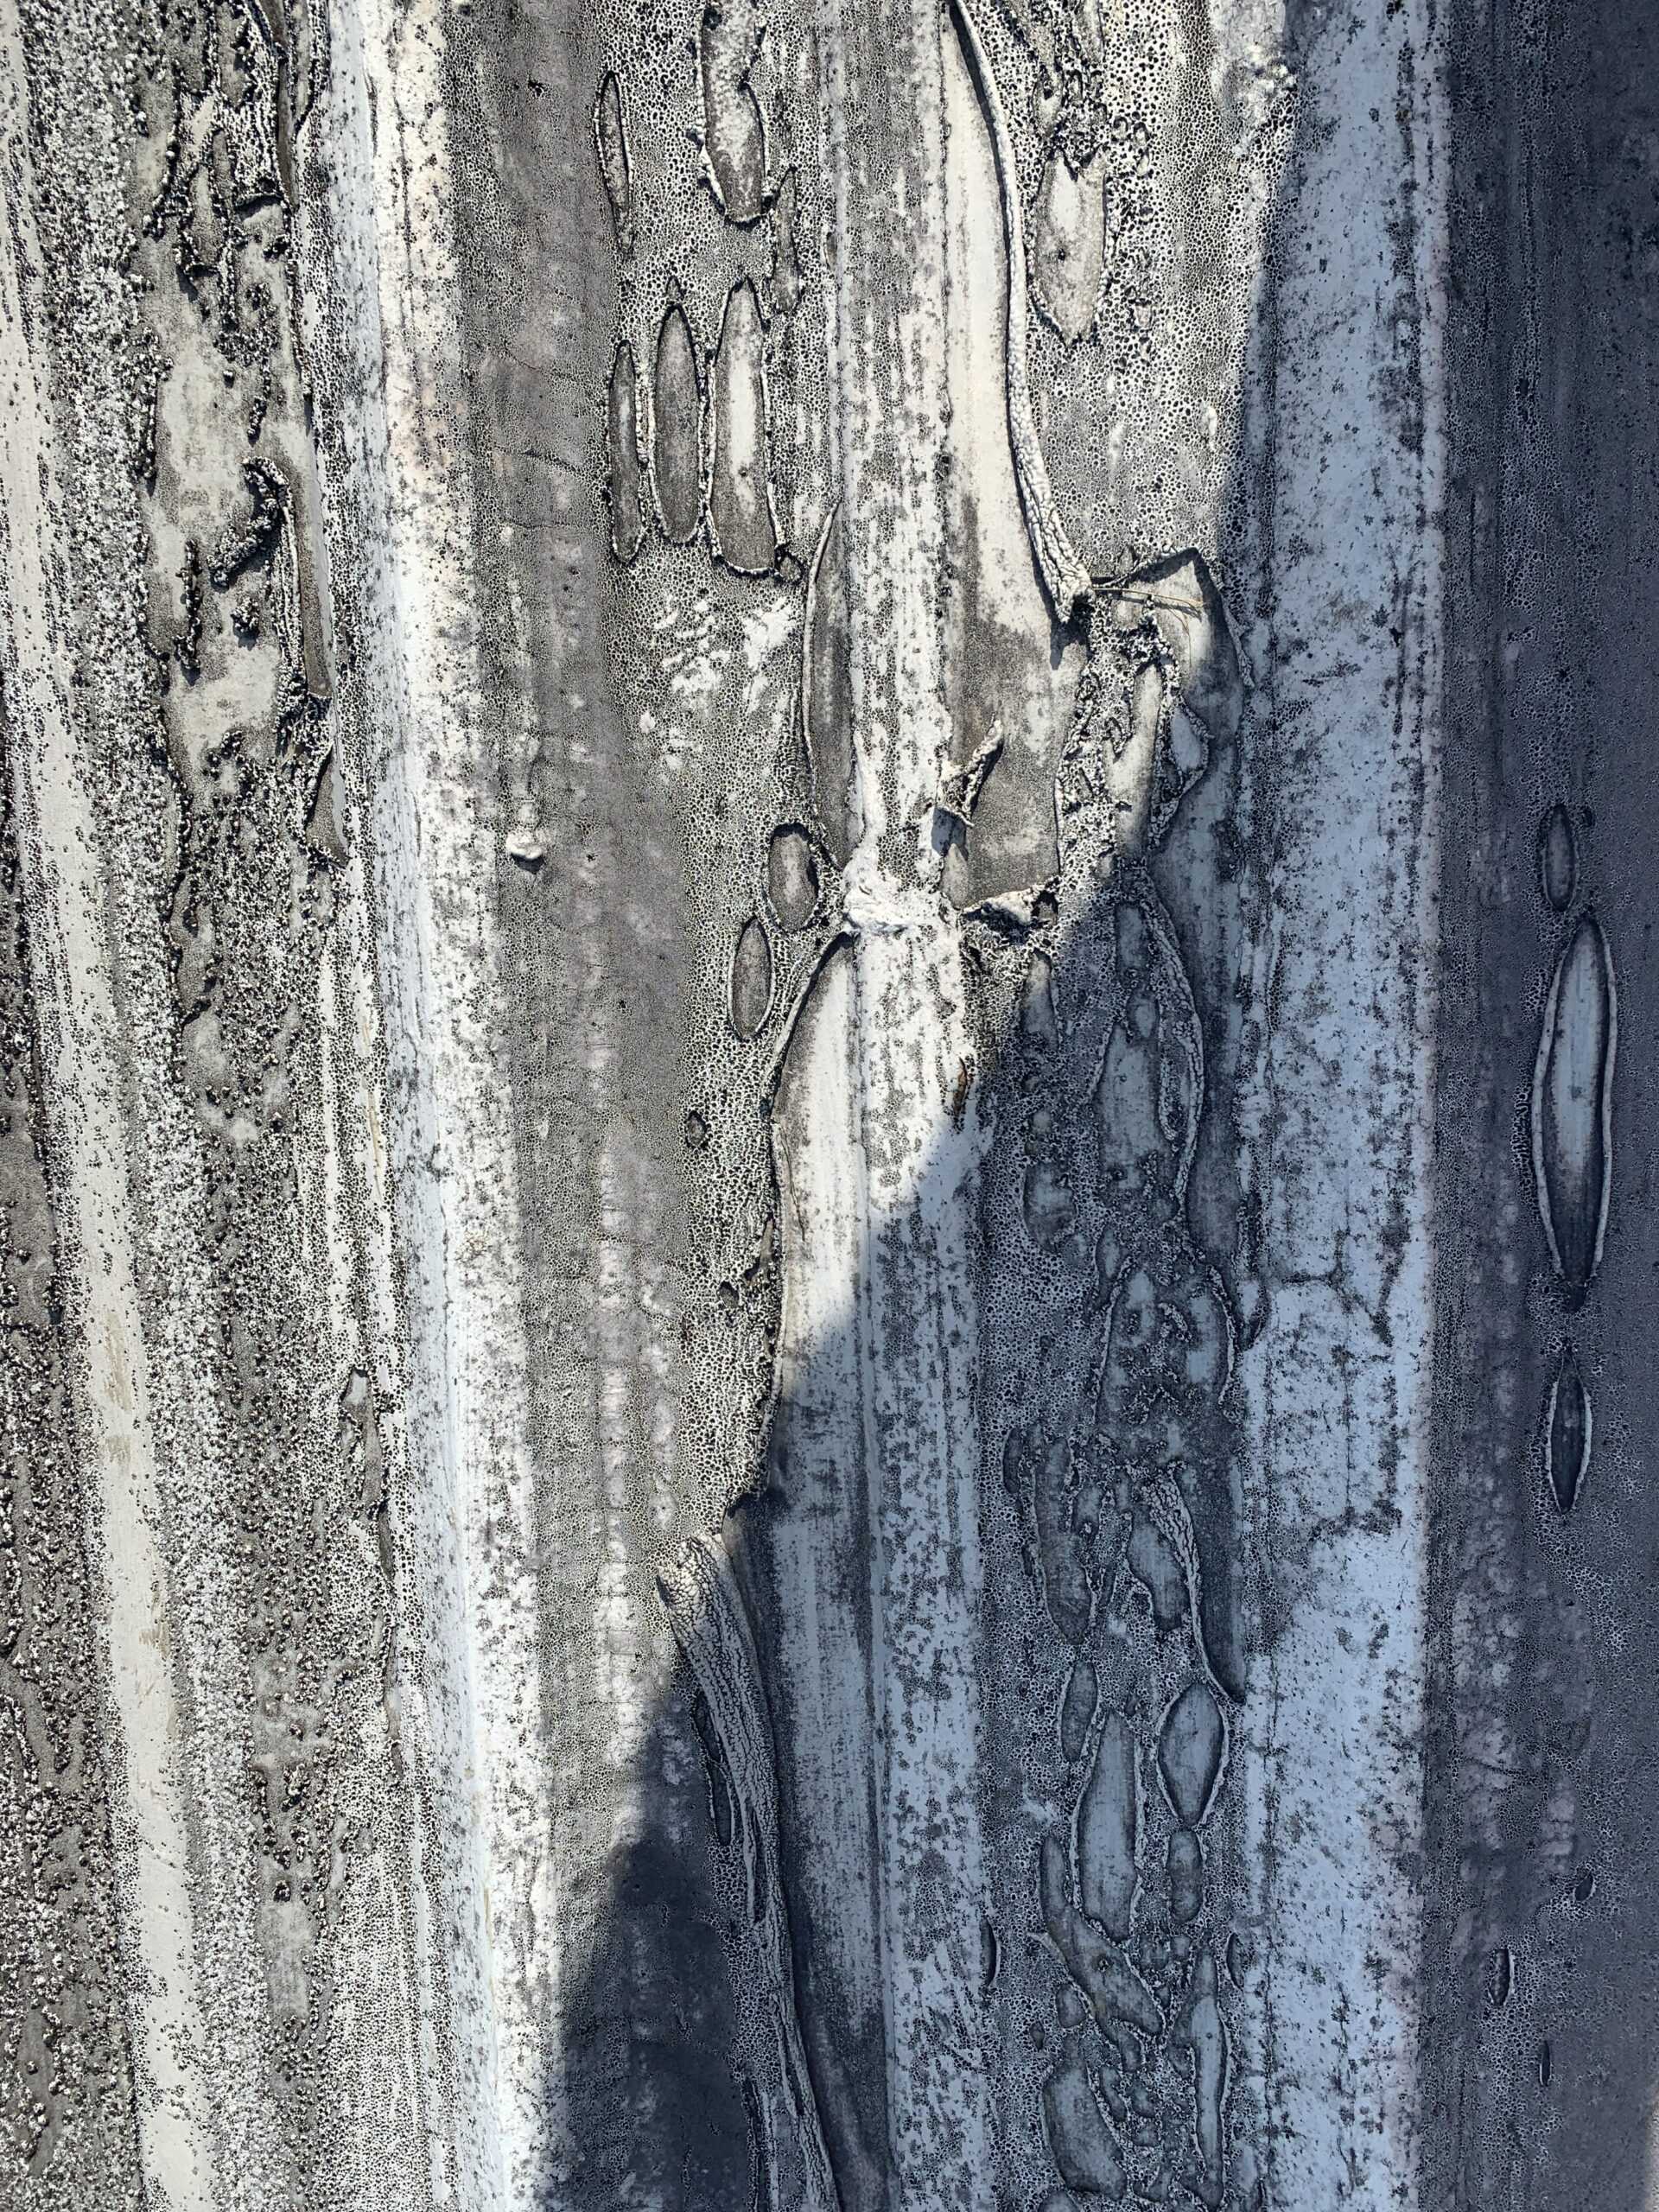 this is a picture of an old roof coating with all sorts of problems